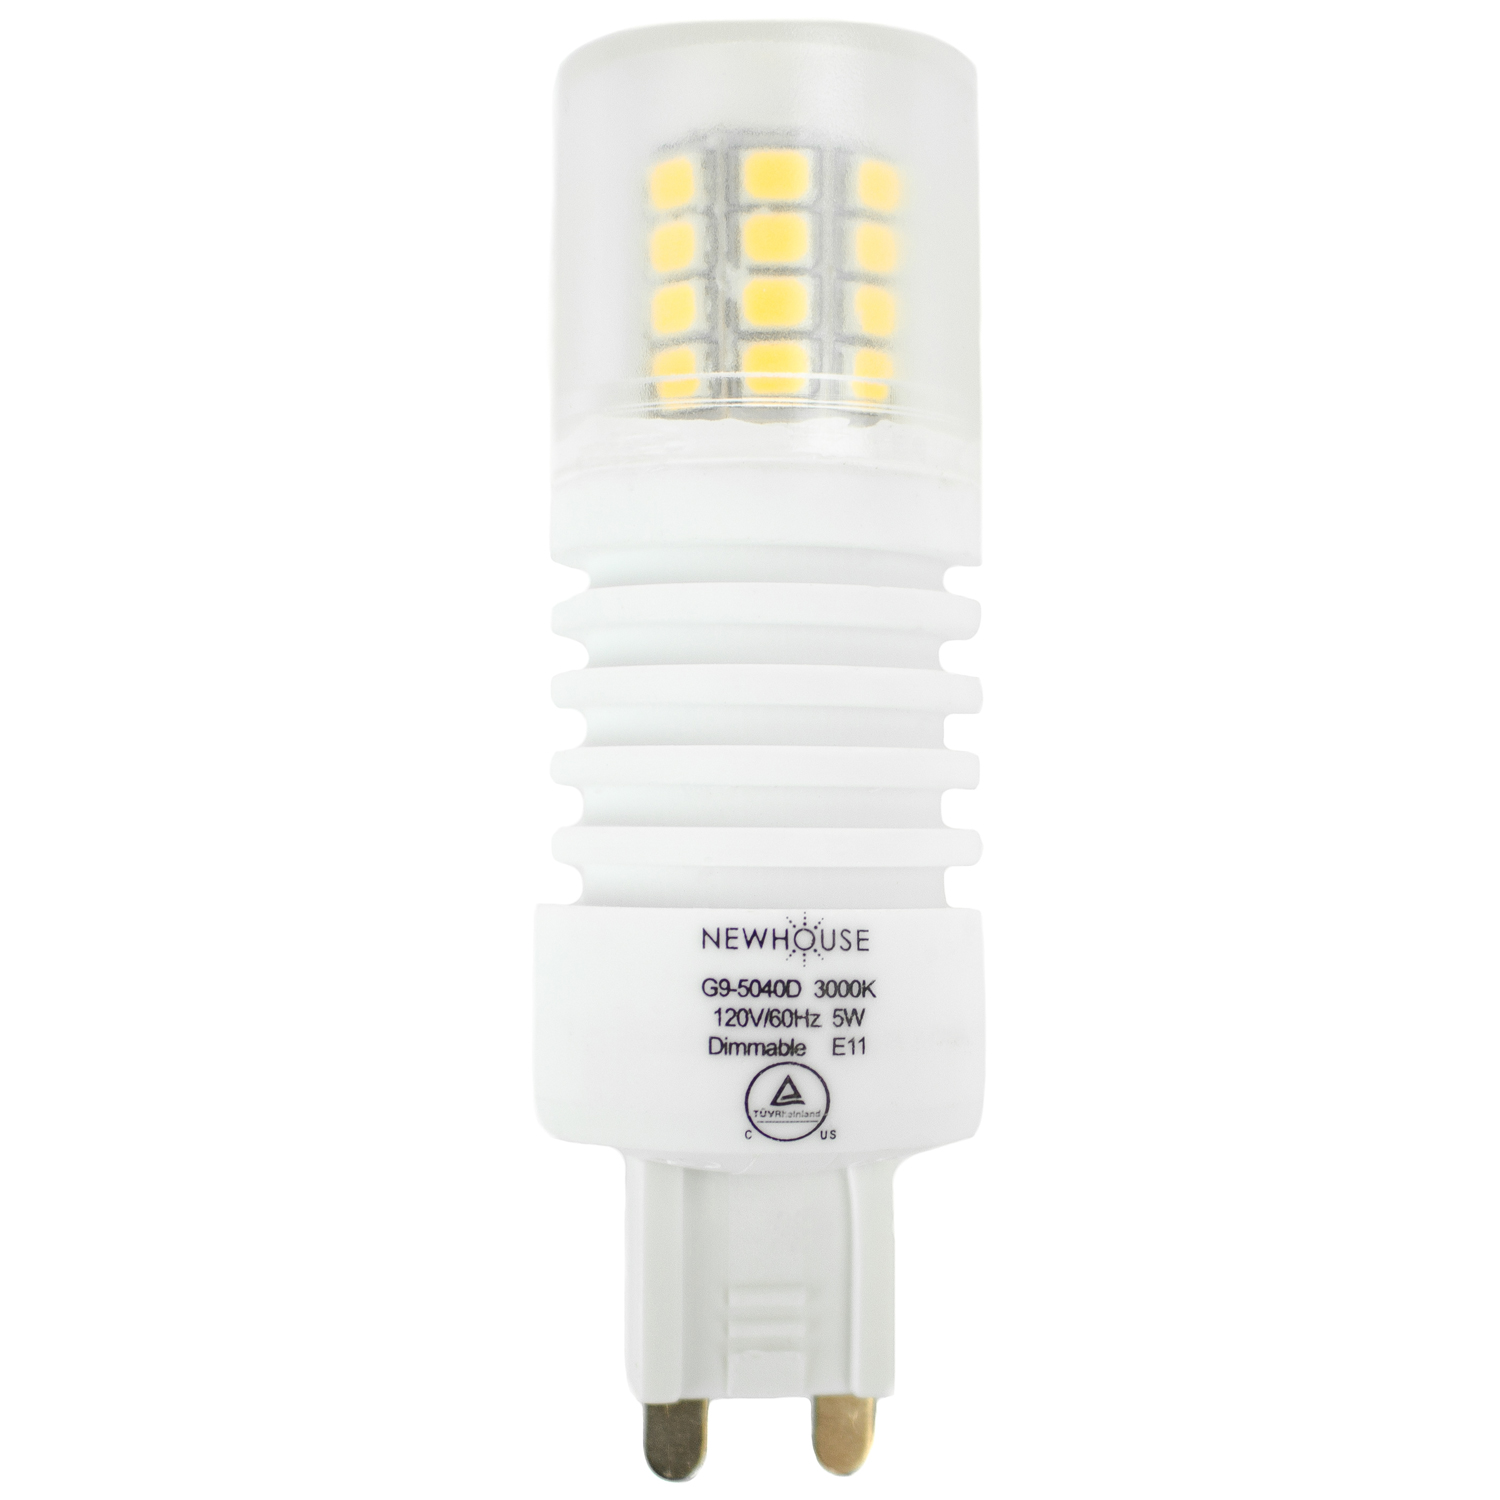 5w 40w Equivalent G9 5040d Dimmable Led G9 Bulb Newhouse Lighting